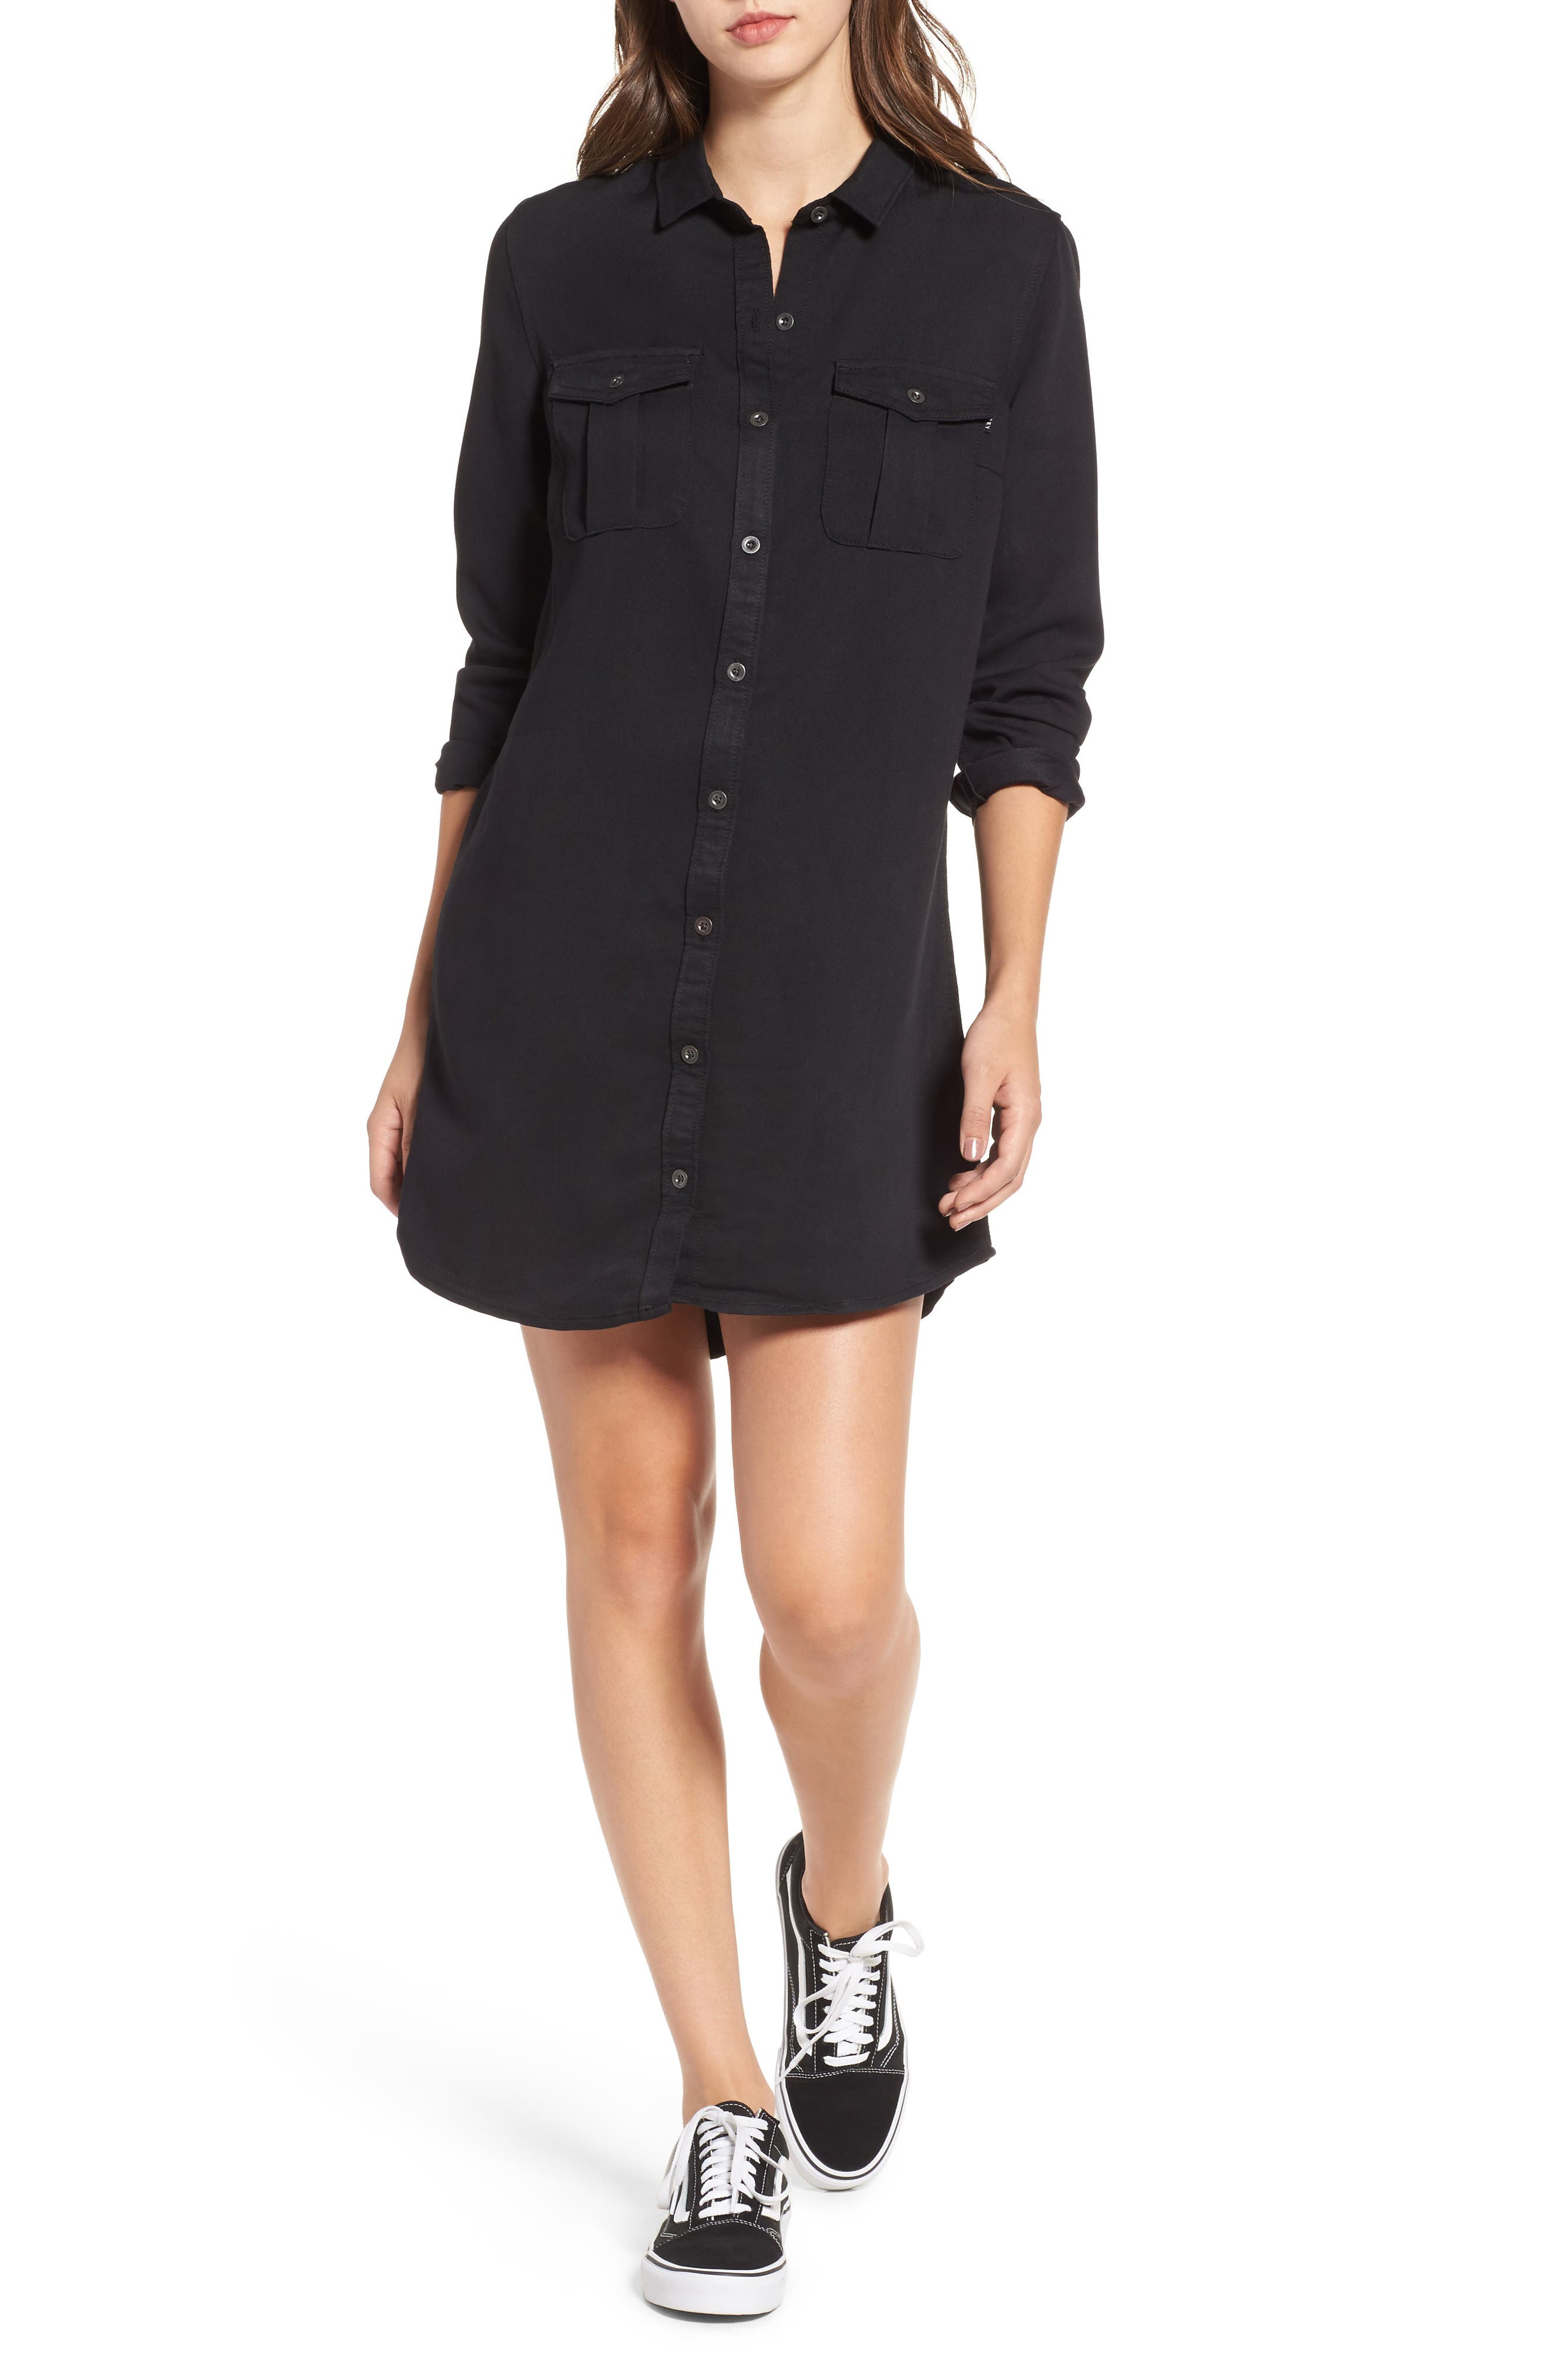 Obey Jett Shirtdress